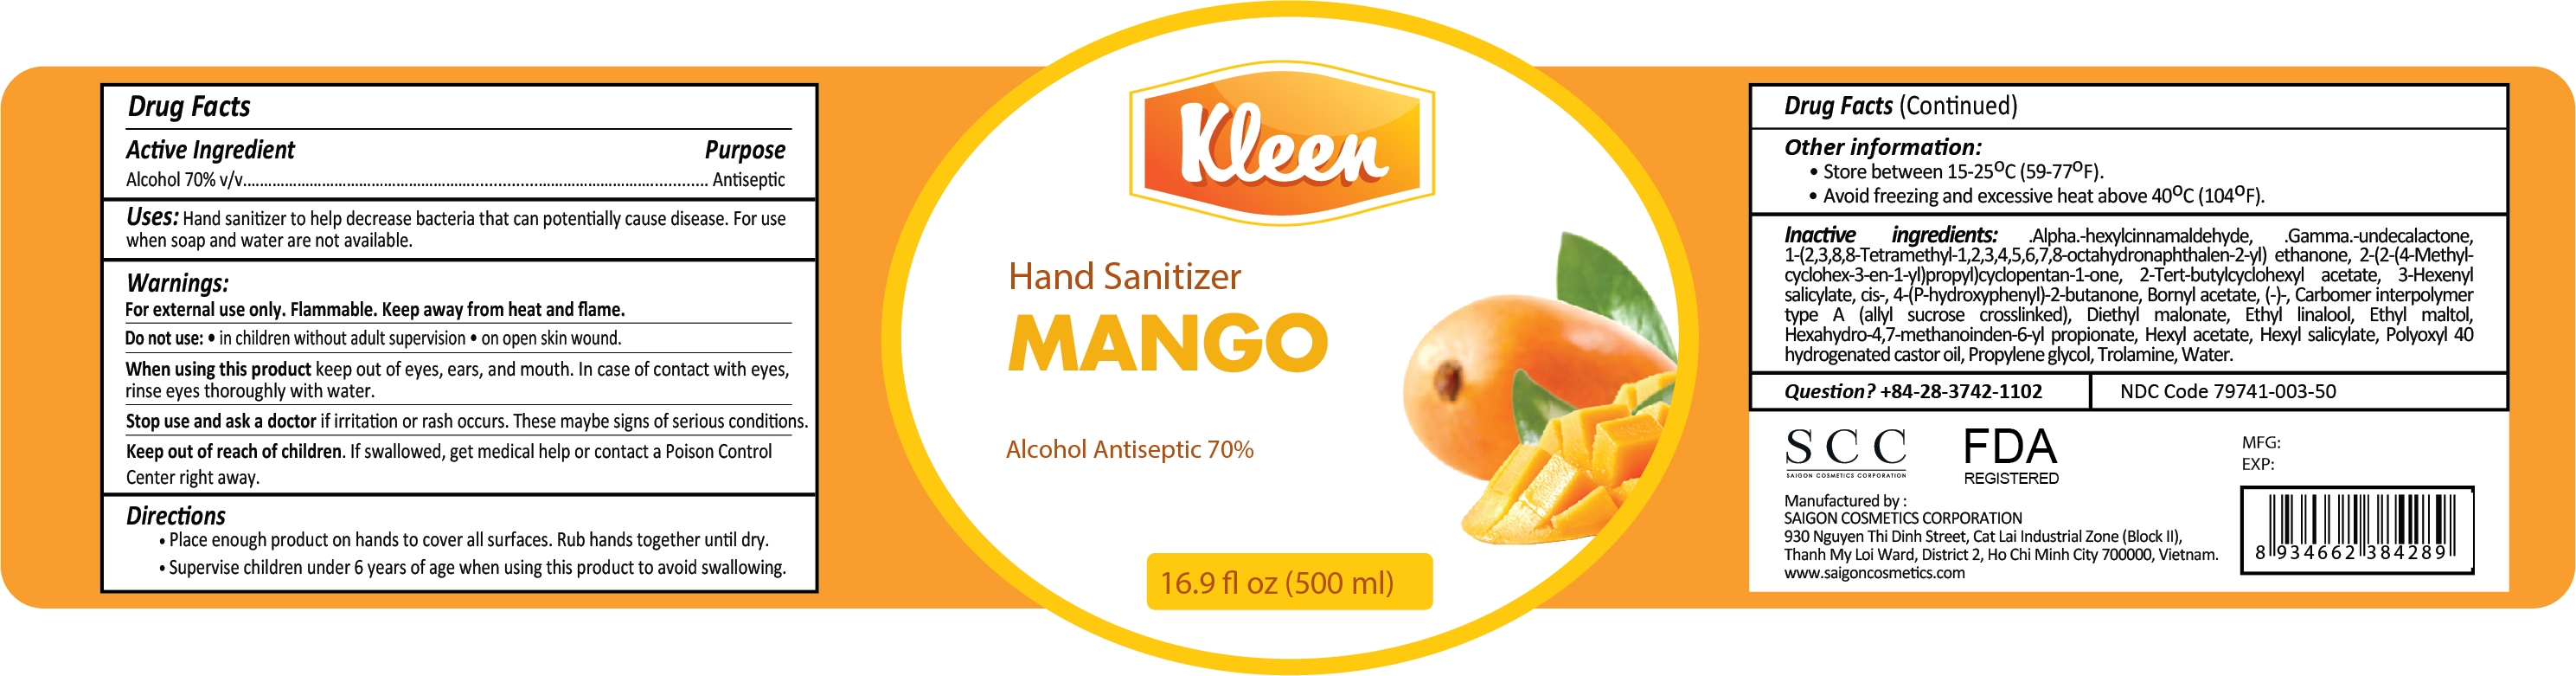 Kleen Hand Sanitizer Mango 500ml Label